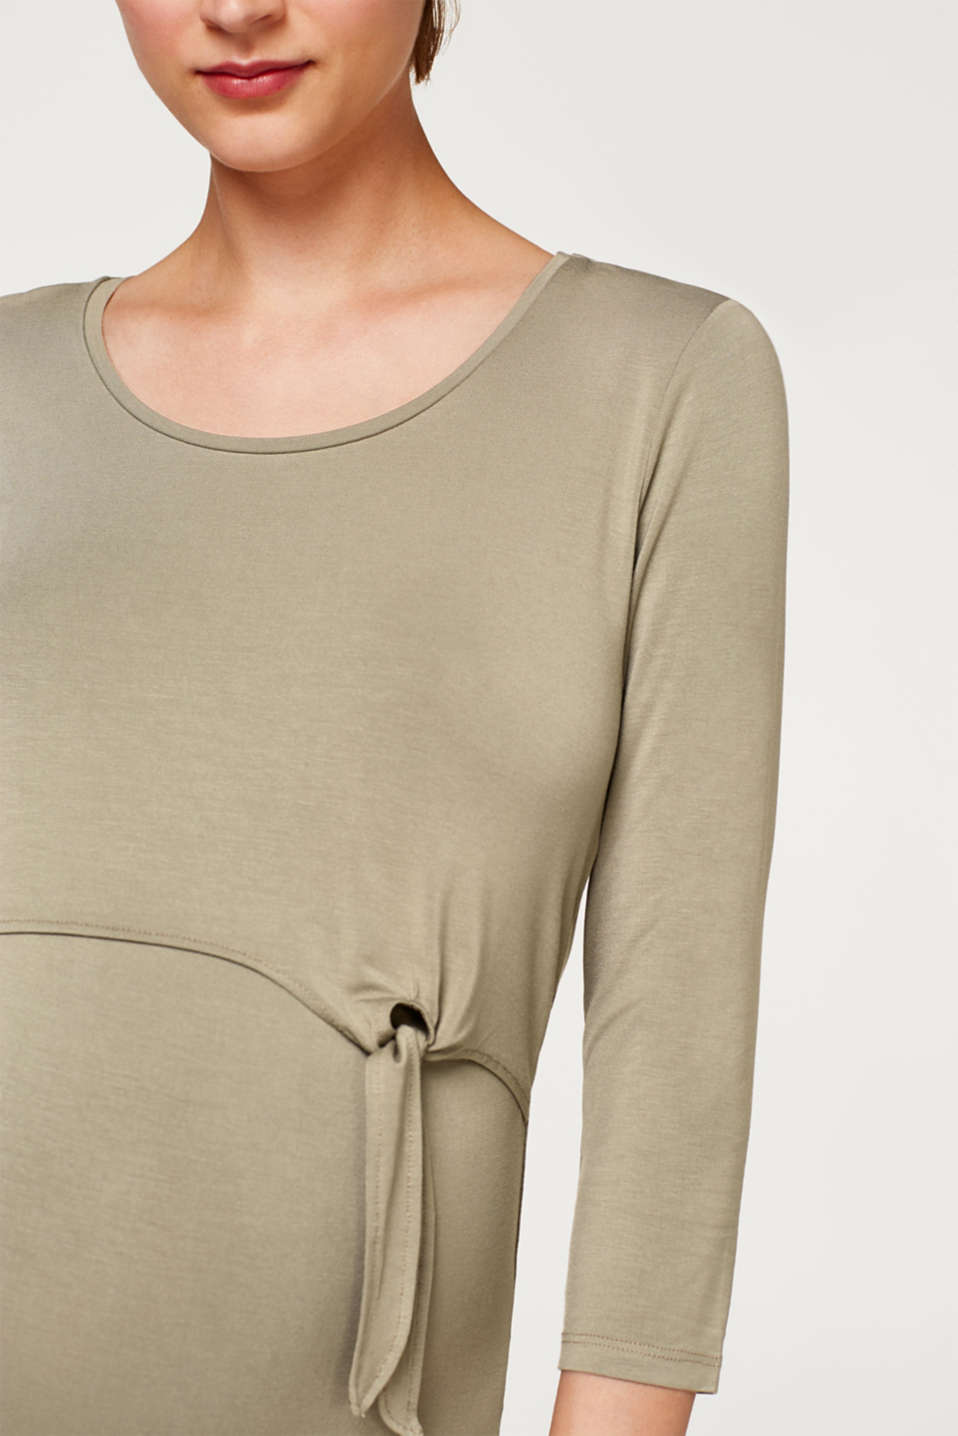 Nursing top with bow details, LCREAL OLIVE, detail image number 5